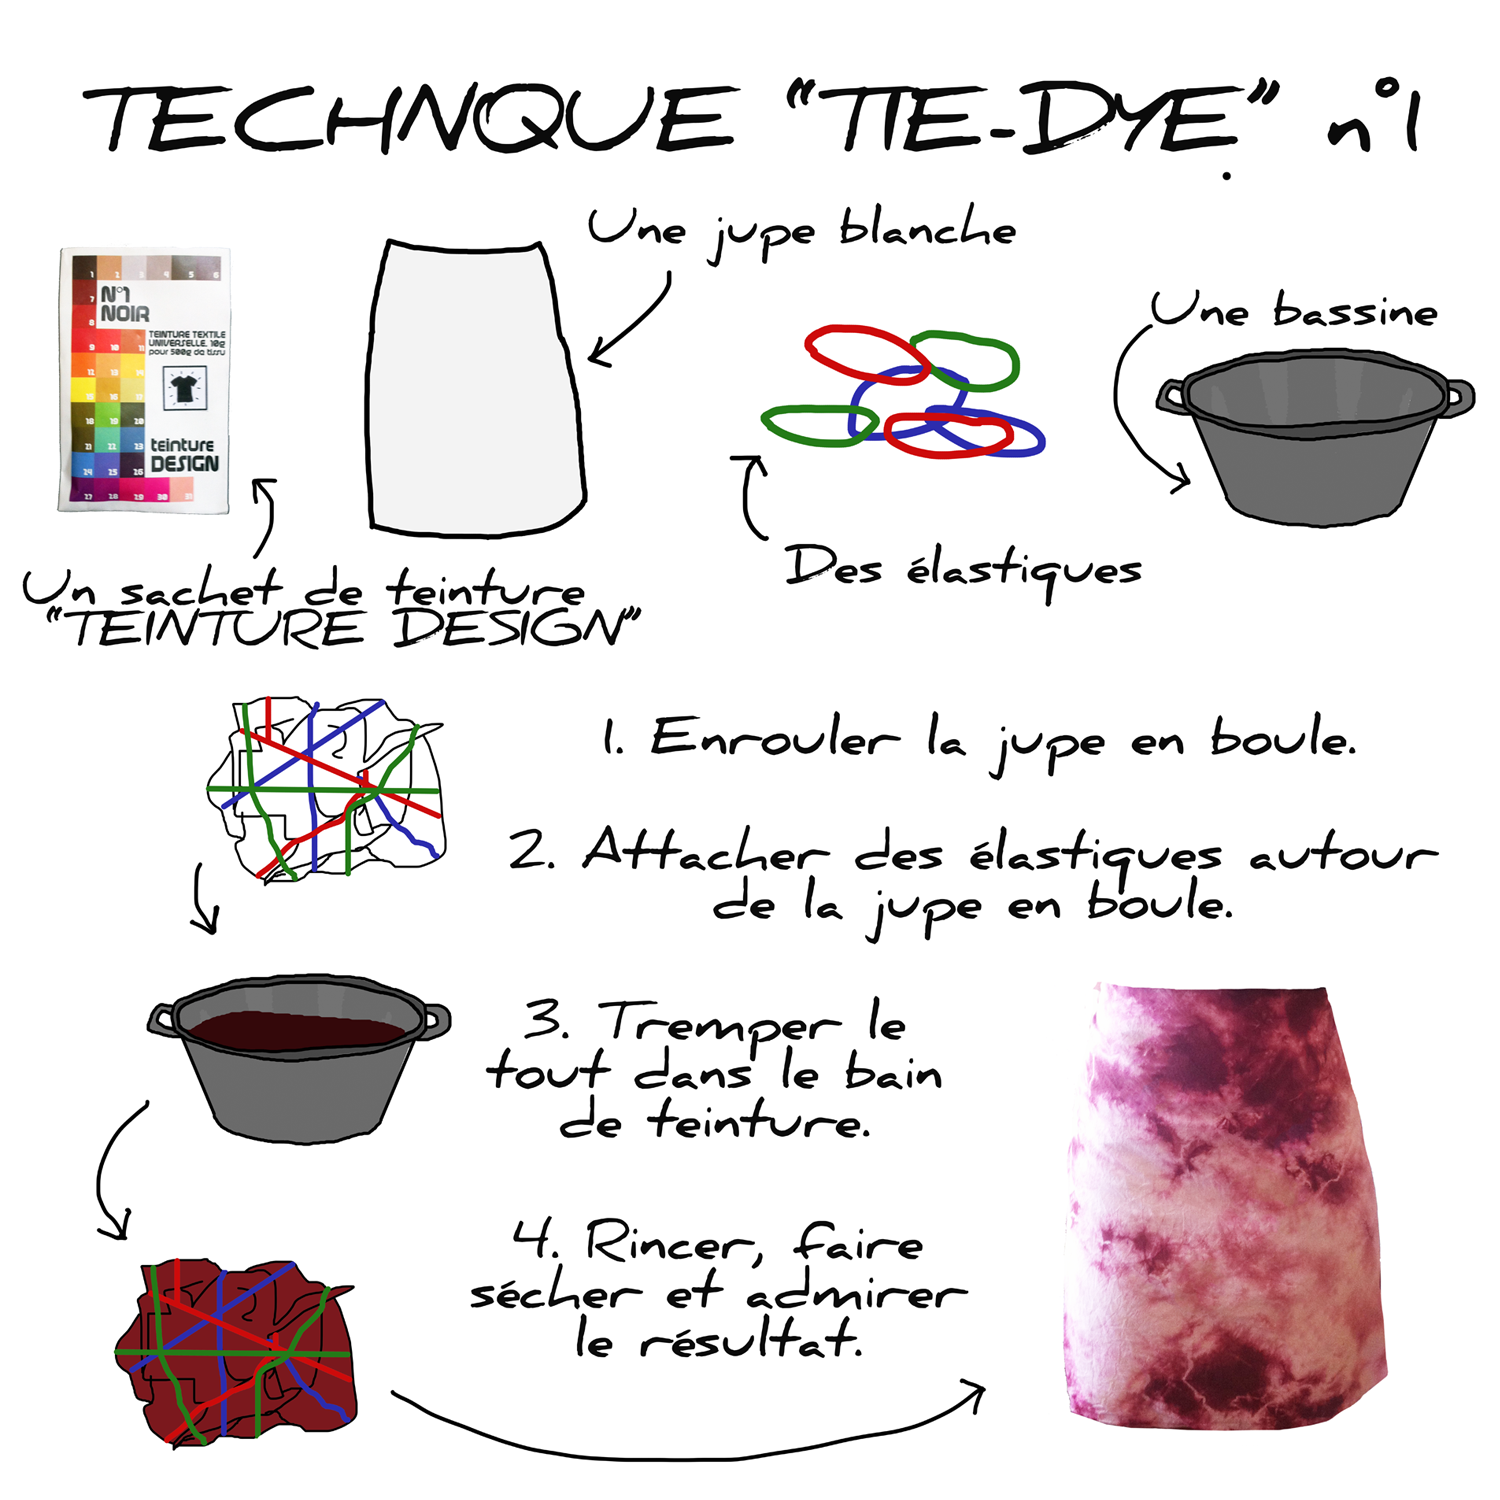 Technique de teinture tie & dye